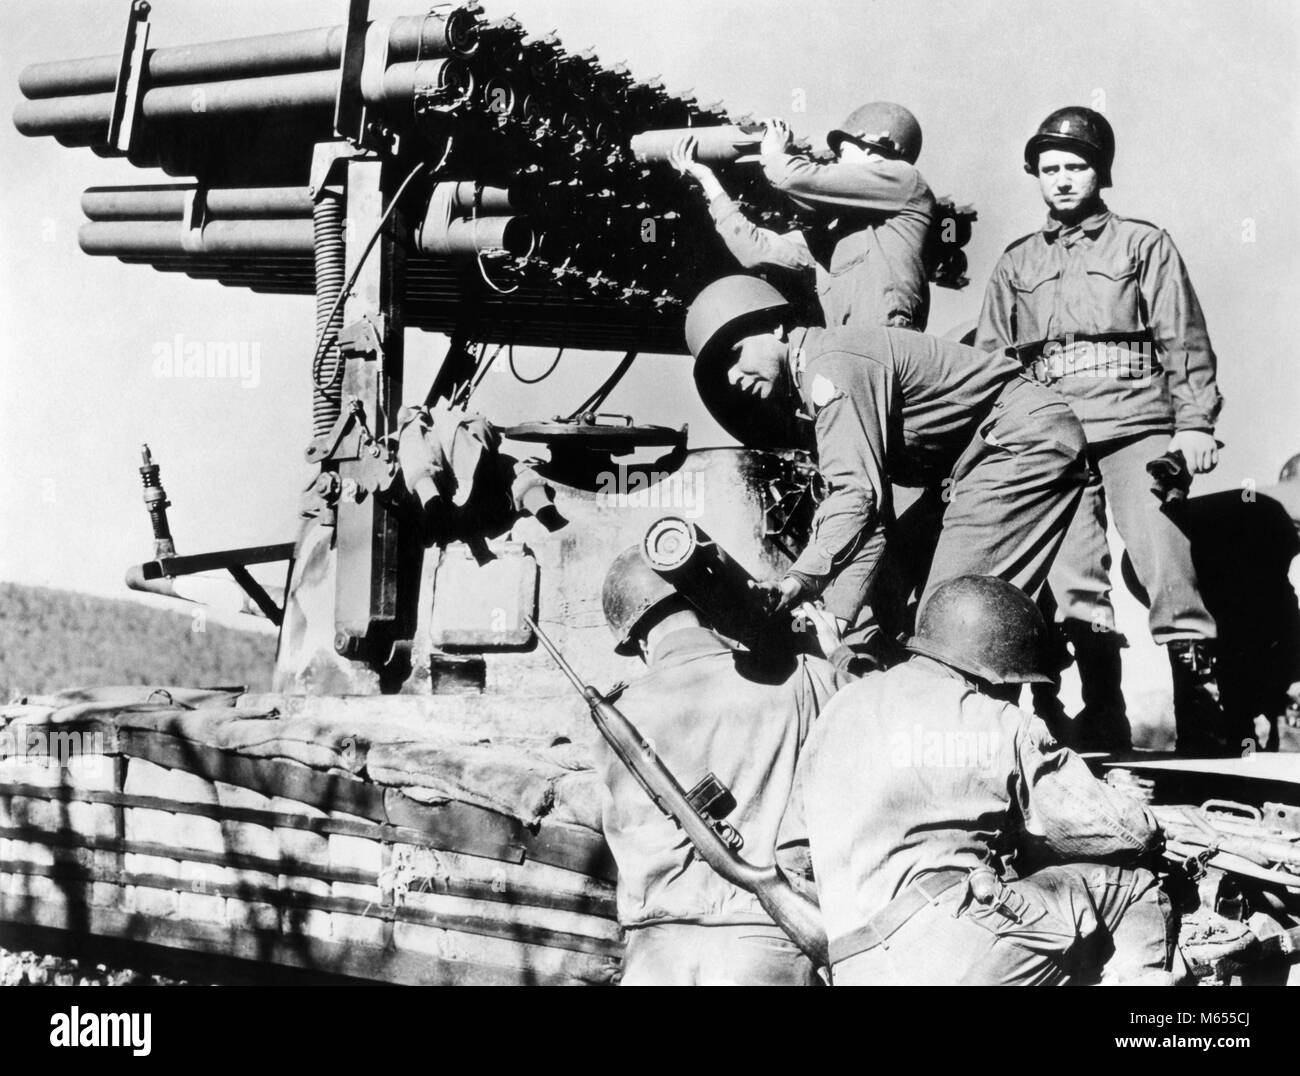 1940s MEN SOLDIERS LOADING T-34 ROCKET LAUNCHER MOUNTED ON SHERMAN M-4 TANK WORLD WAR 2 WWII - a2741 HAR001 HARS - Stock Image